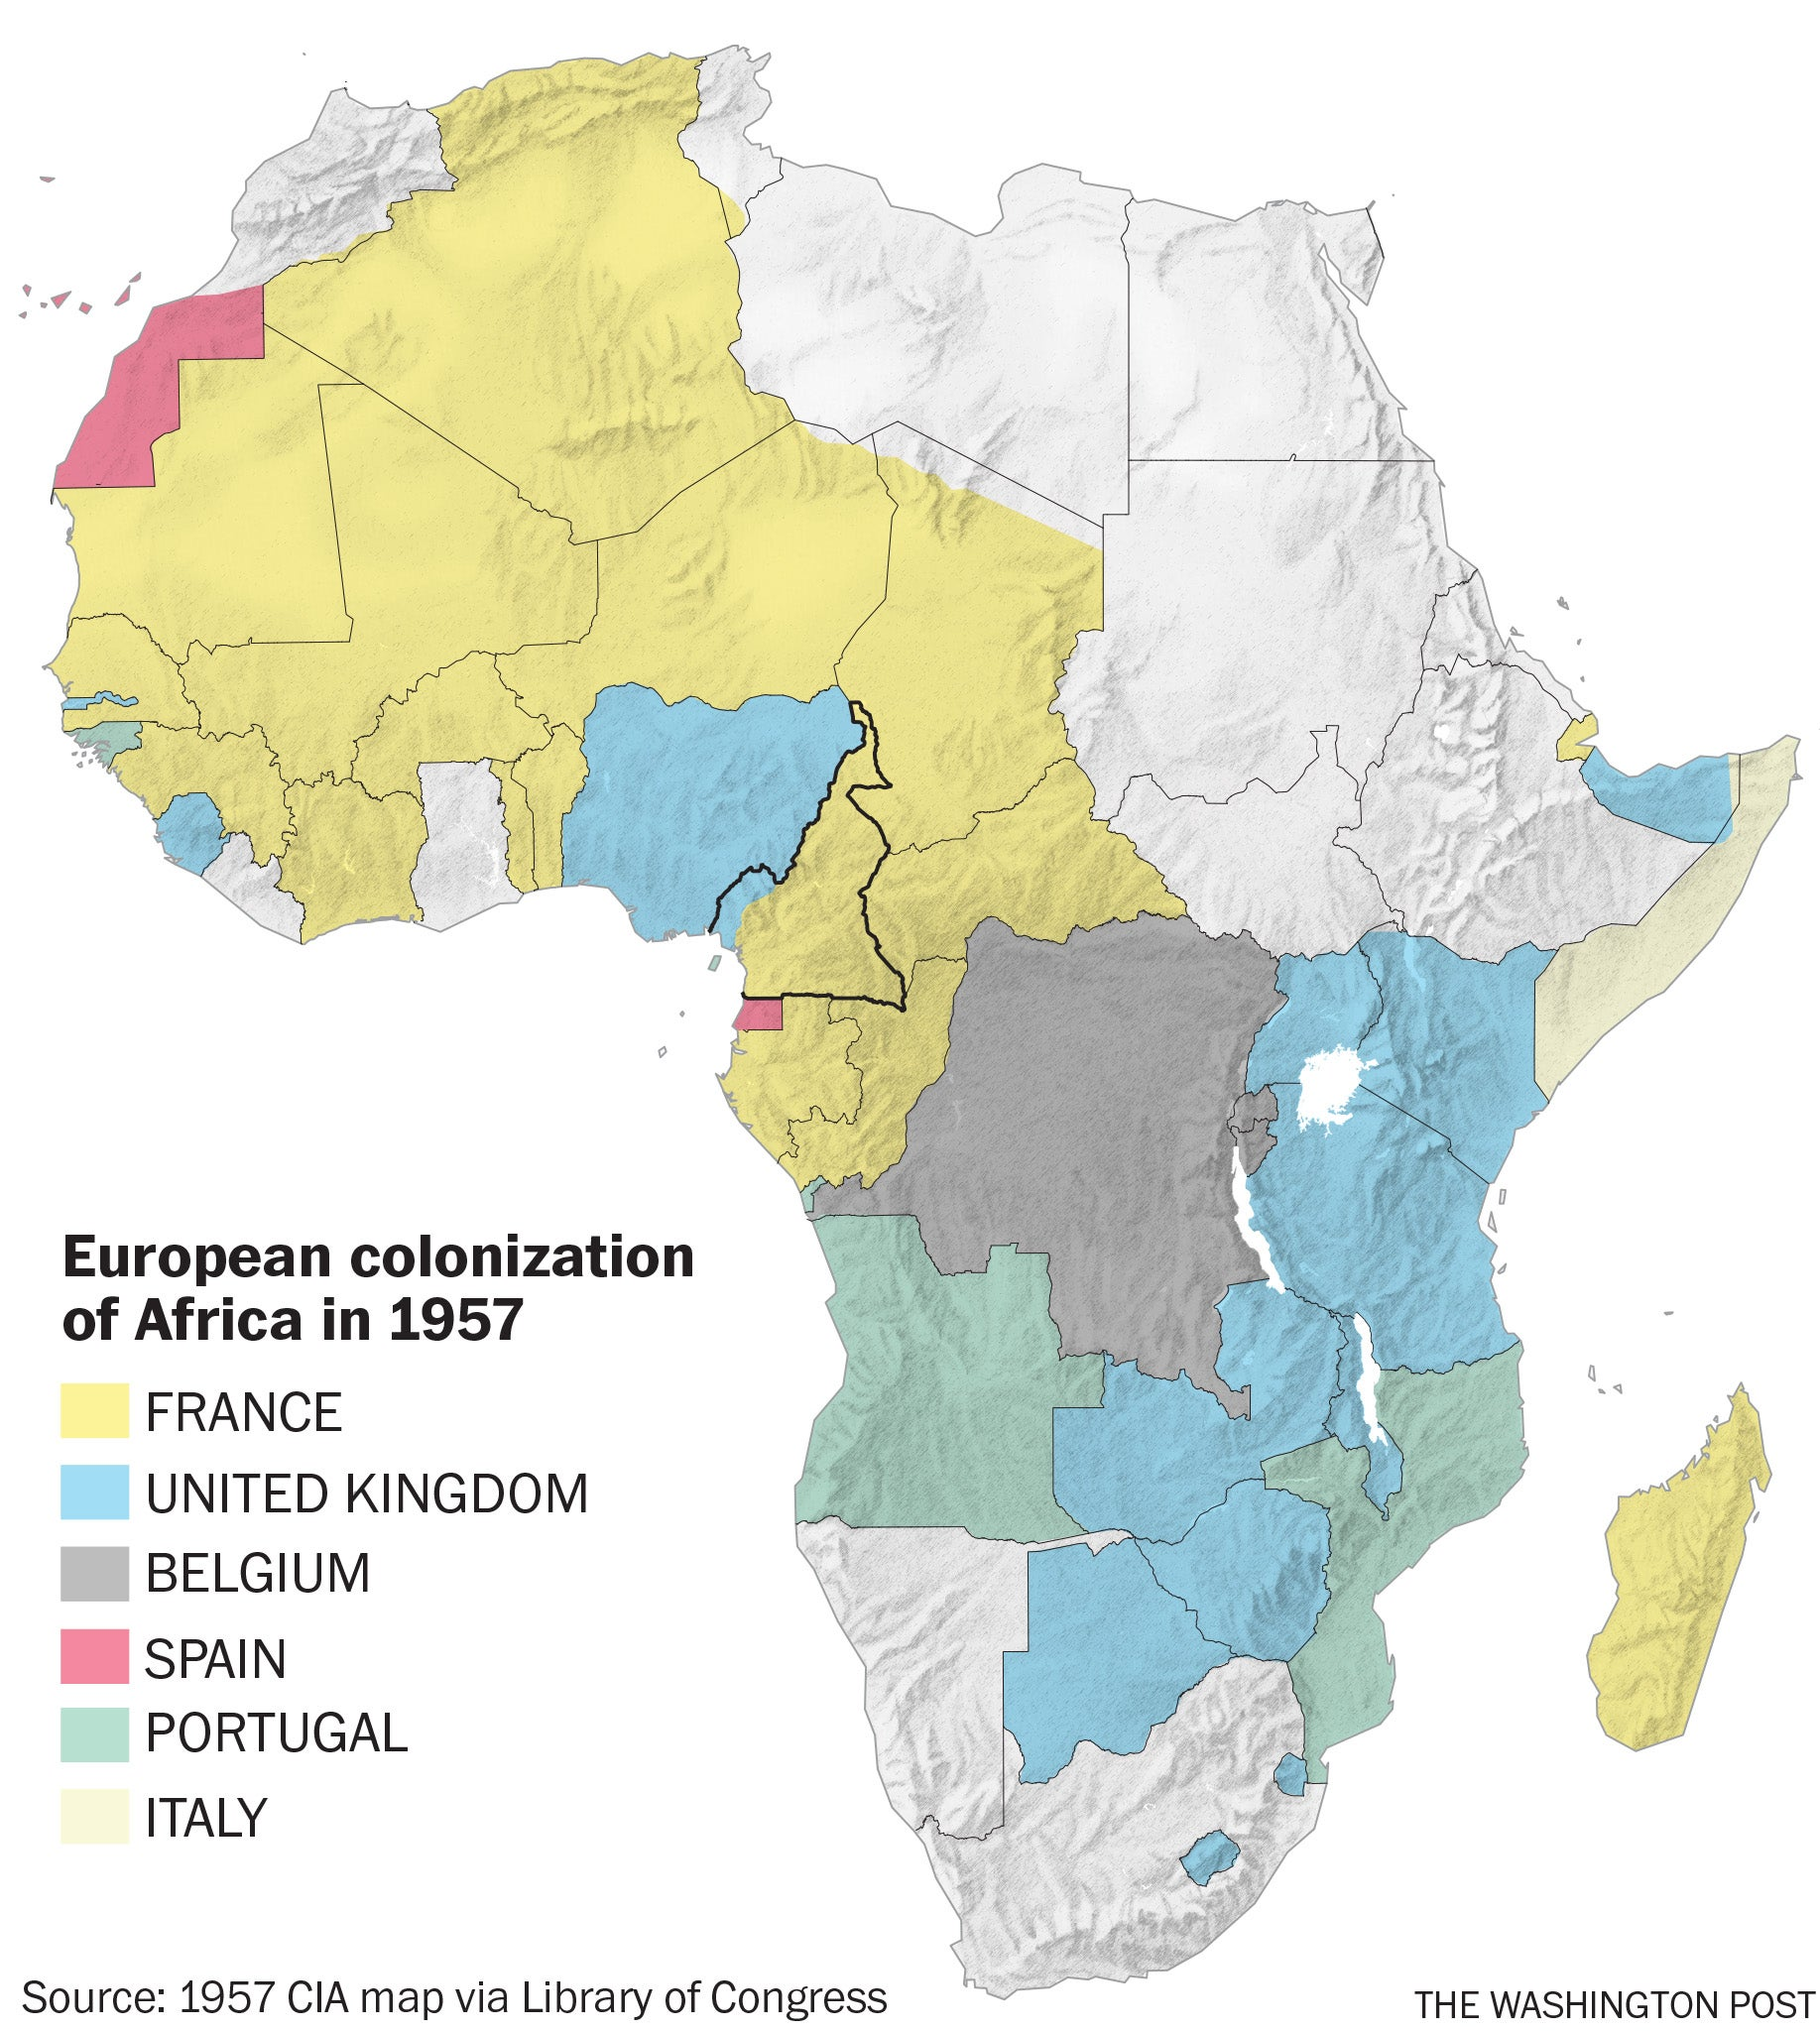 War of words: Cameroon being torn apart by deadly language ... Map Of Africa In French on map of ethiopia in french, map of african countries, map of france in french, us map in french, map of european countries in french, map colonial africa, map of madagascar in french, map of belgium in french, map of switzerland in french, map of casablanca in french, south america map in french, map of french speaking countries, map of caribbean in french, nutrition label in french, map of world in french, map of north america in french, map of canada in french, map of seychelles in french, map of central america in french, united states map in french,